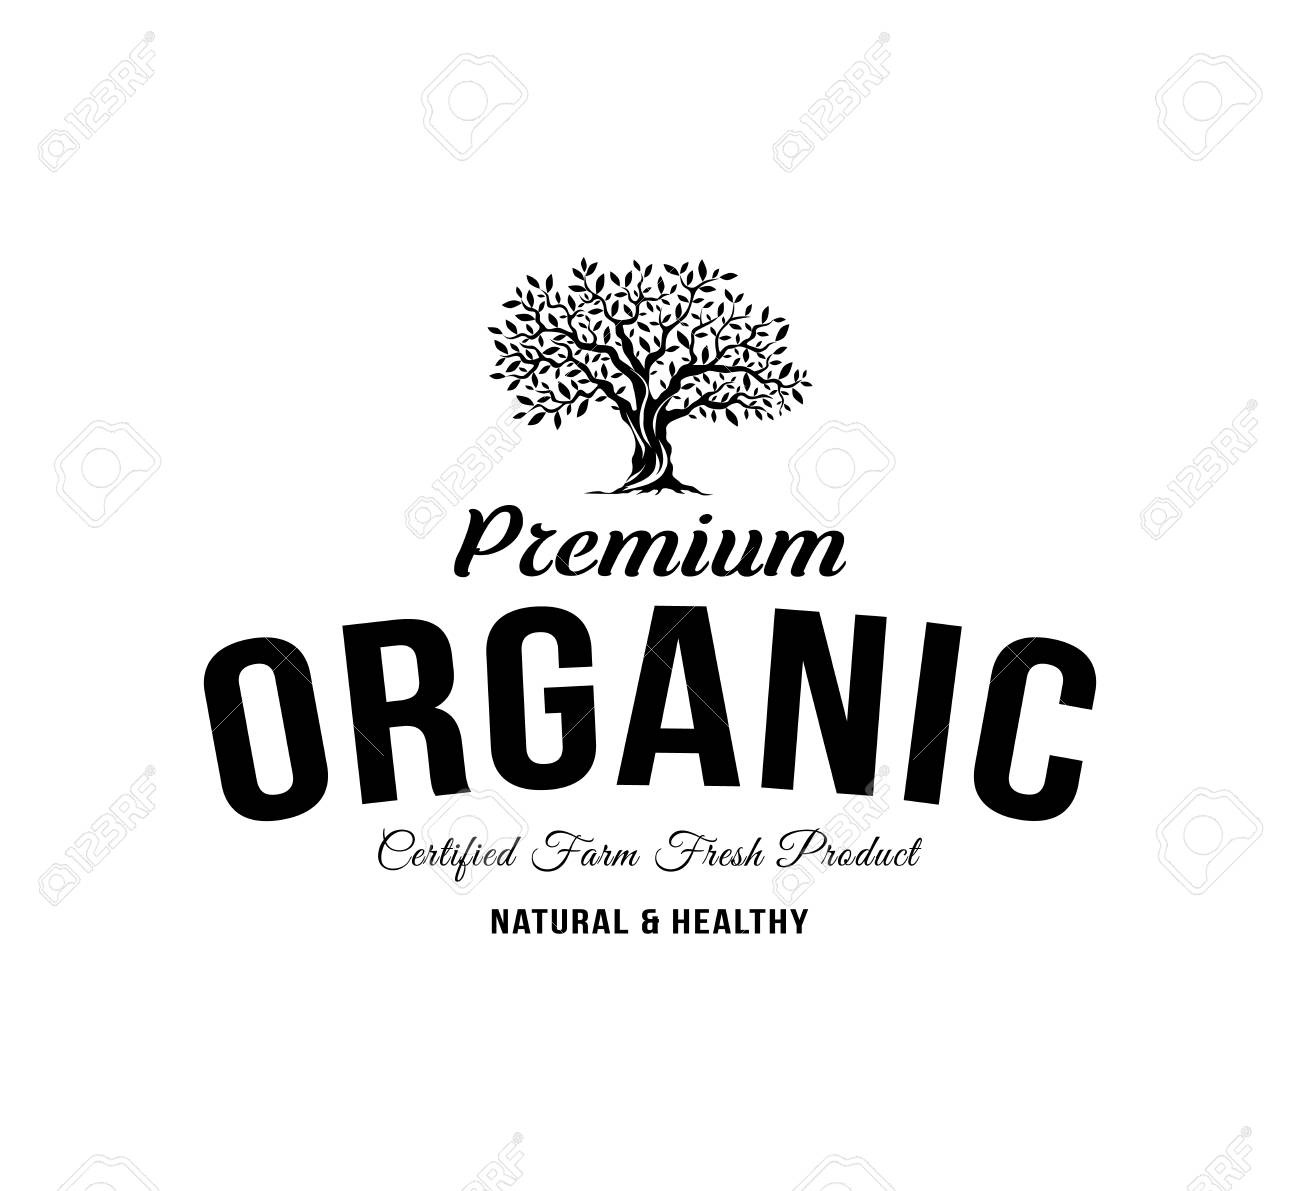 Organic Natural And Healthy Farm Fresh Food Retro Emblem Vintage Olive Tree Logo Isolated On